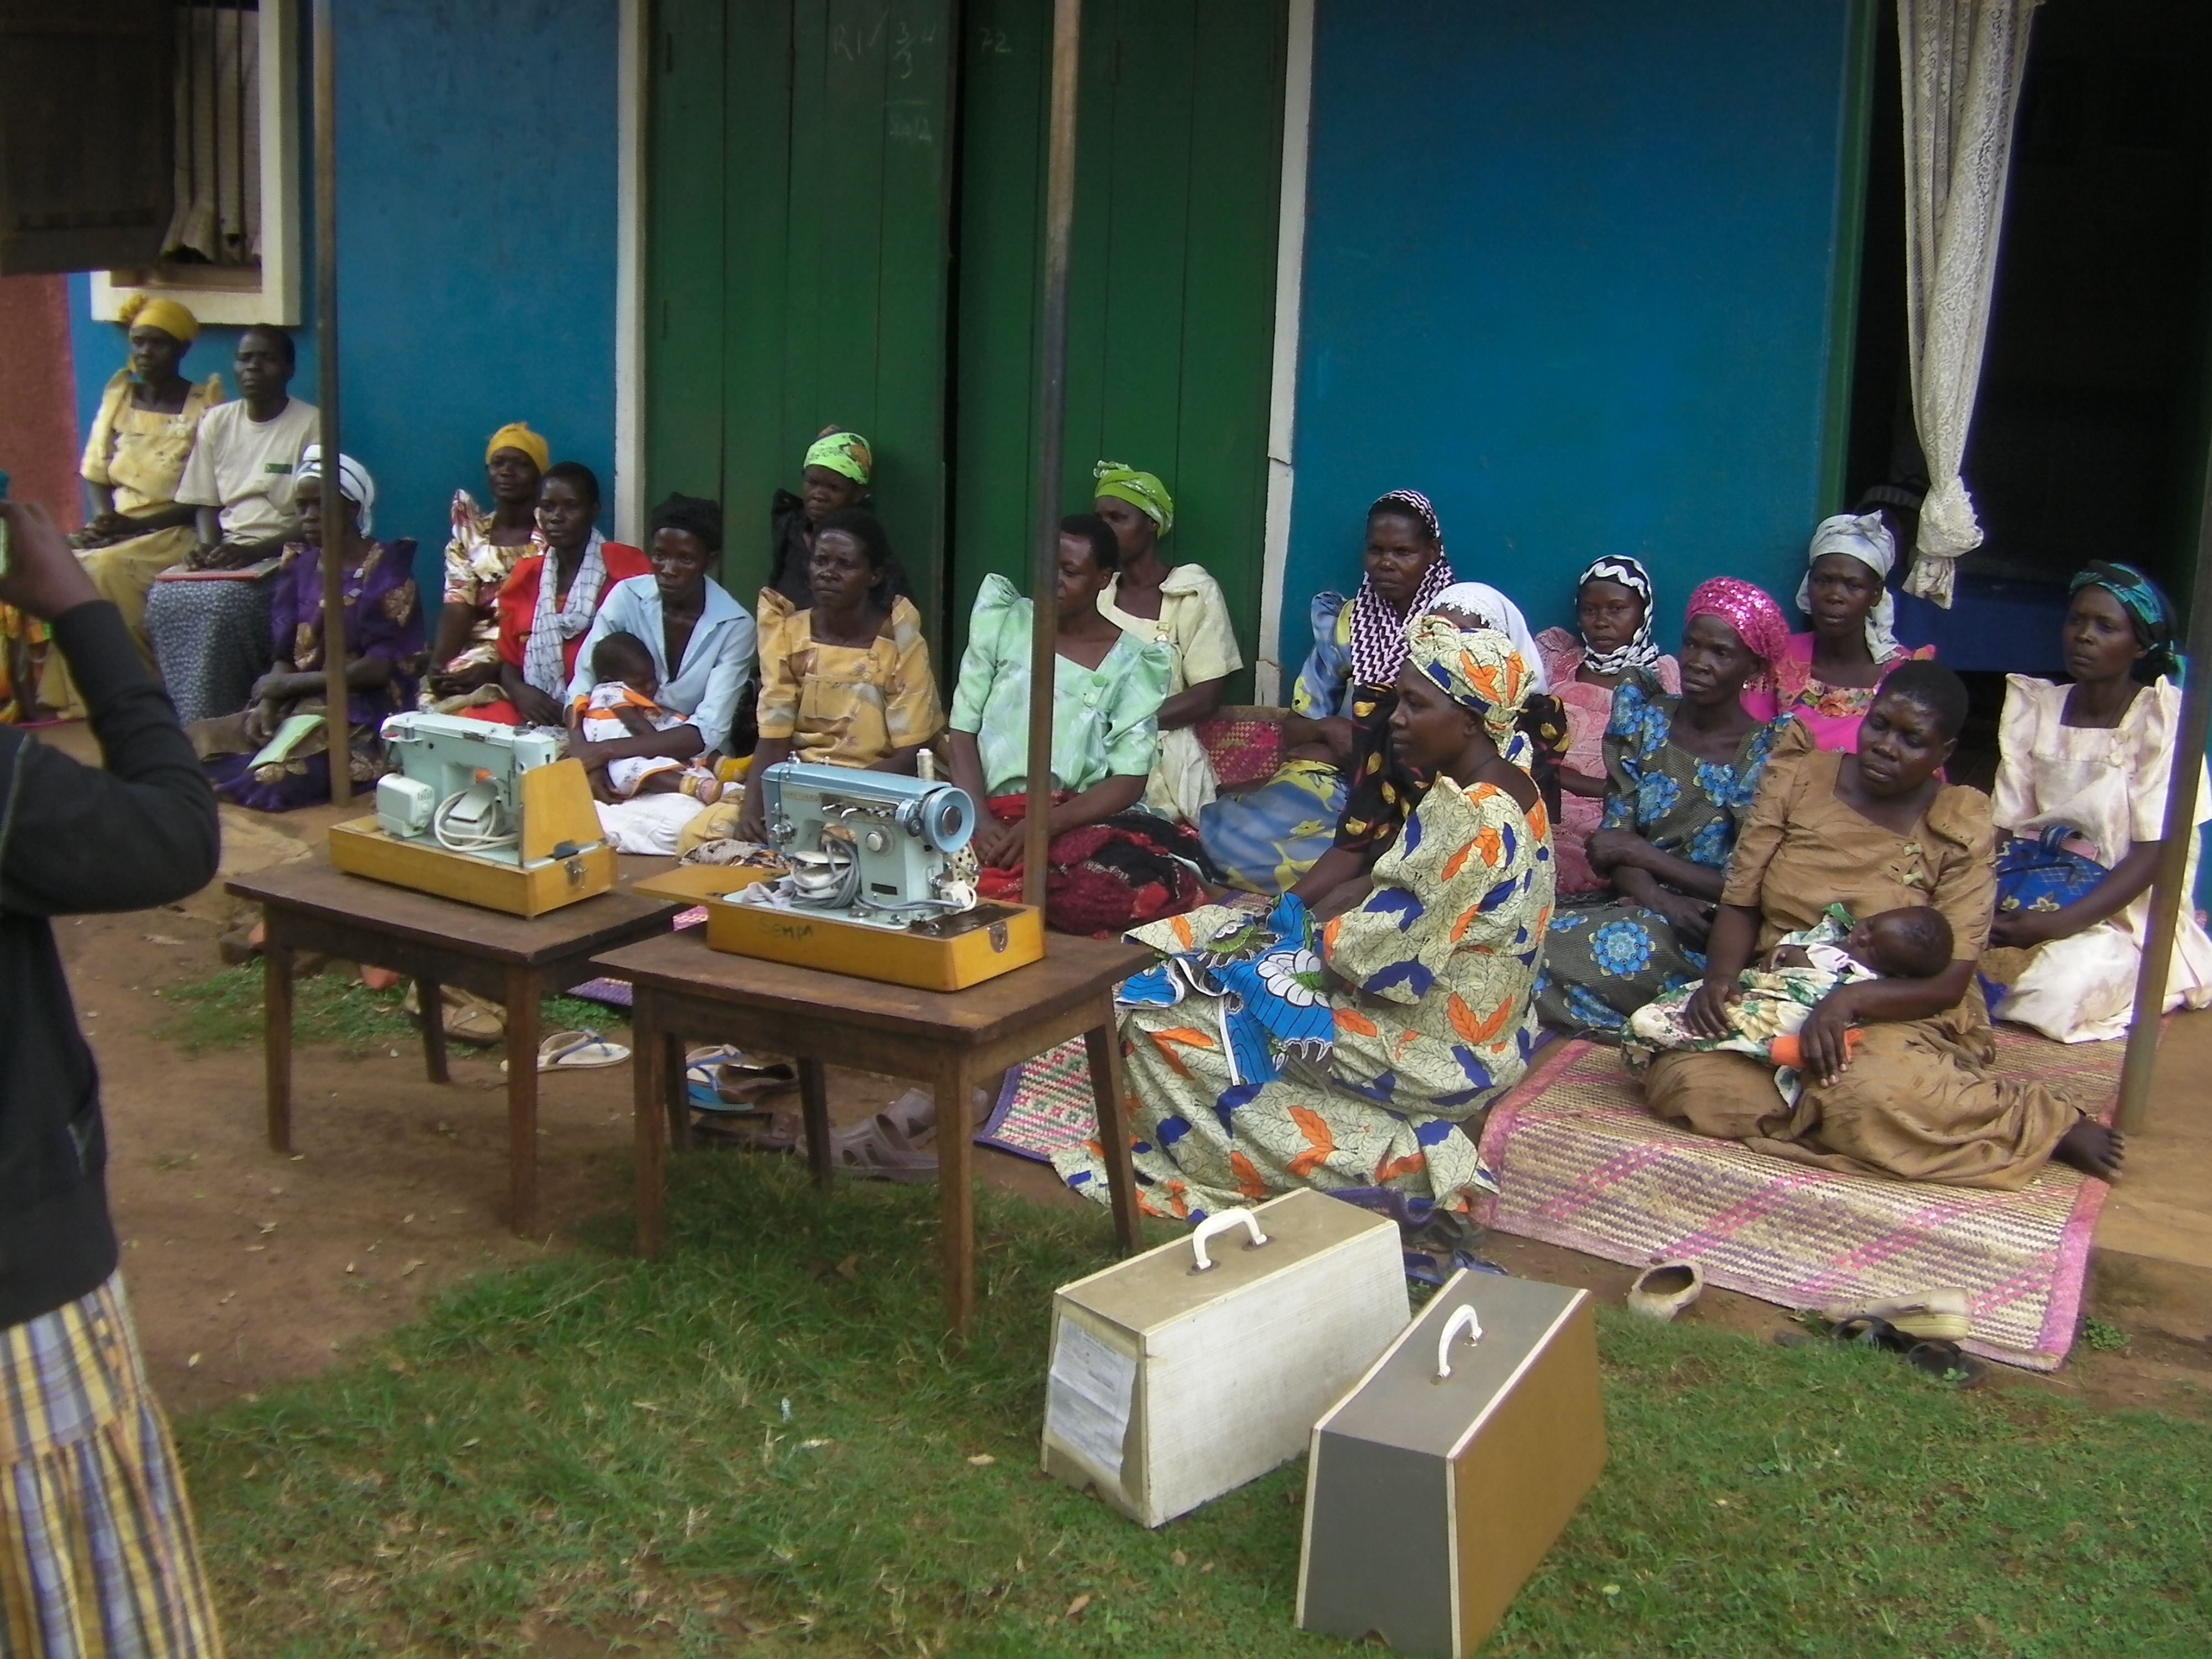 Kisa Kya Murama Women's group: This group is 5 years old and has 40 members.  They received 2 brother electric Zig Zag machines during the pilot and are using them to train up their members in tailoring skills.